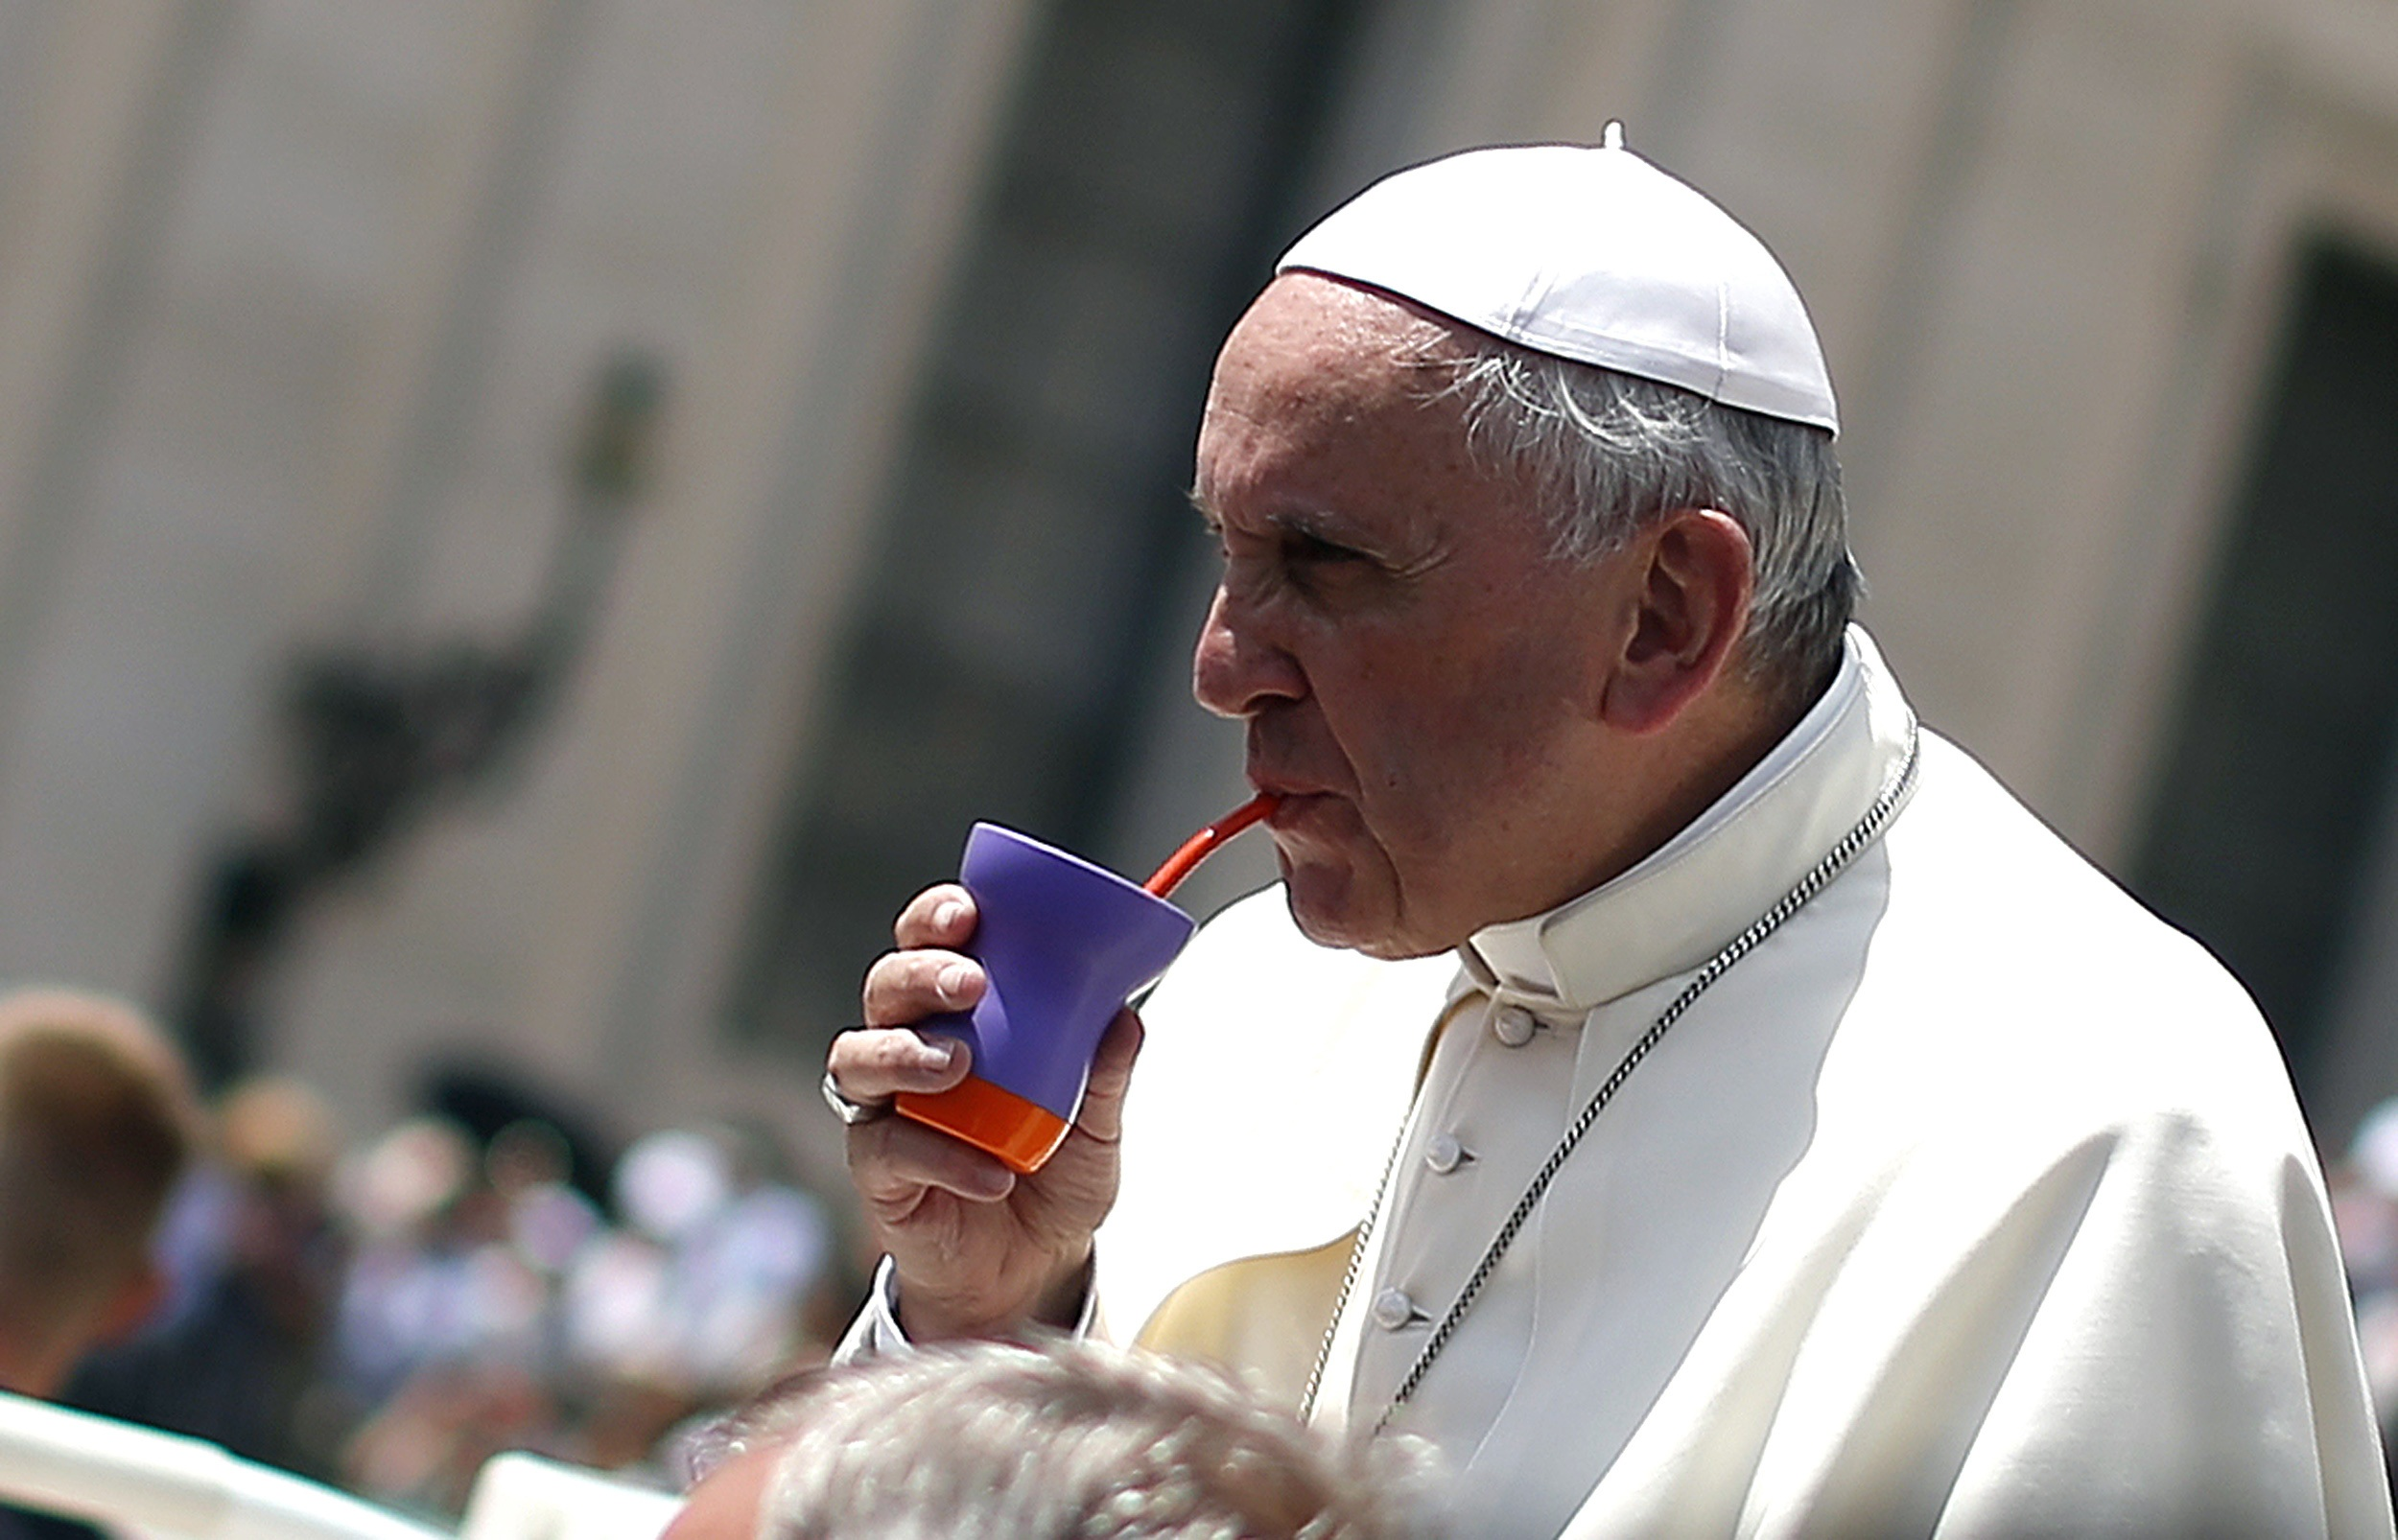 The Pope Is Fine Hes Just Hot Cbs News